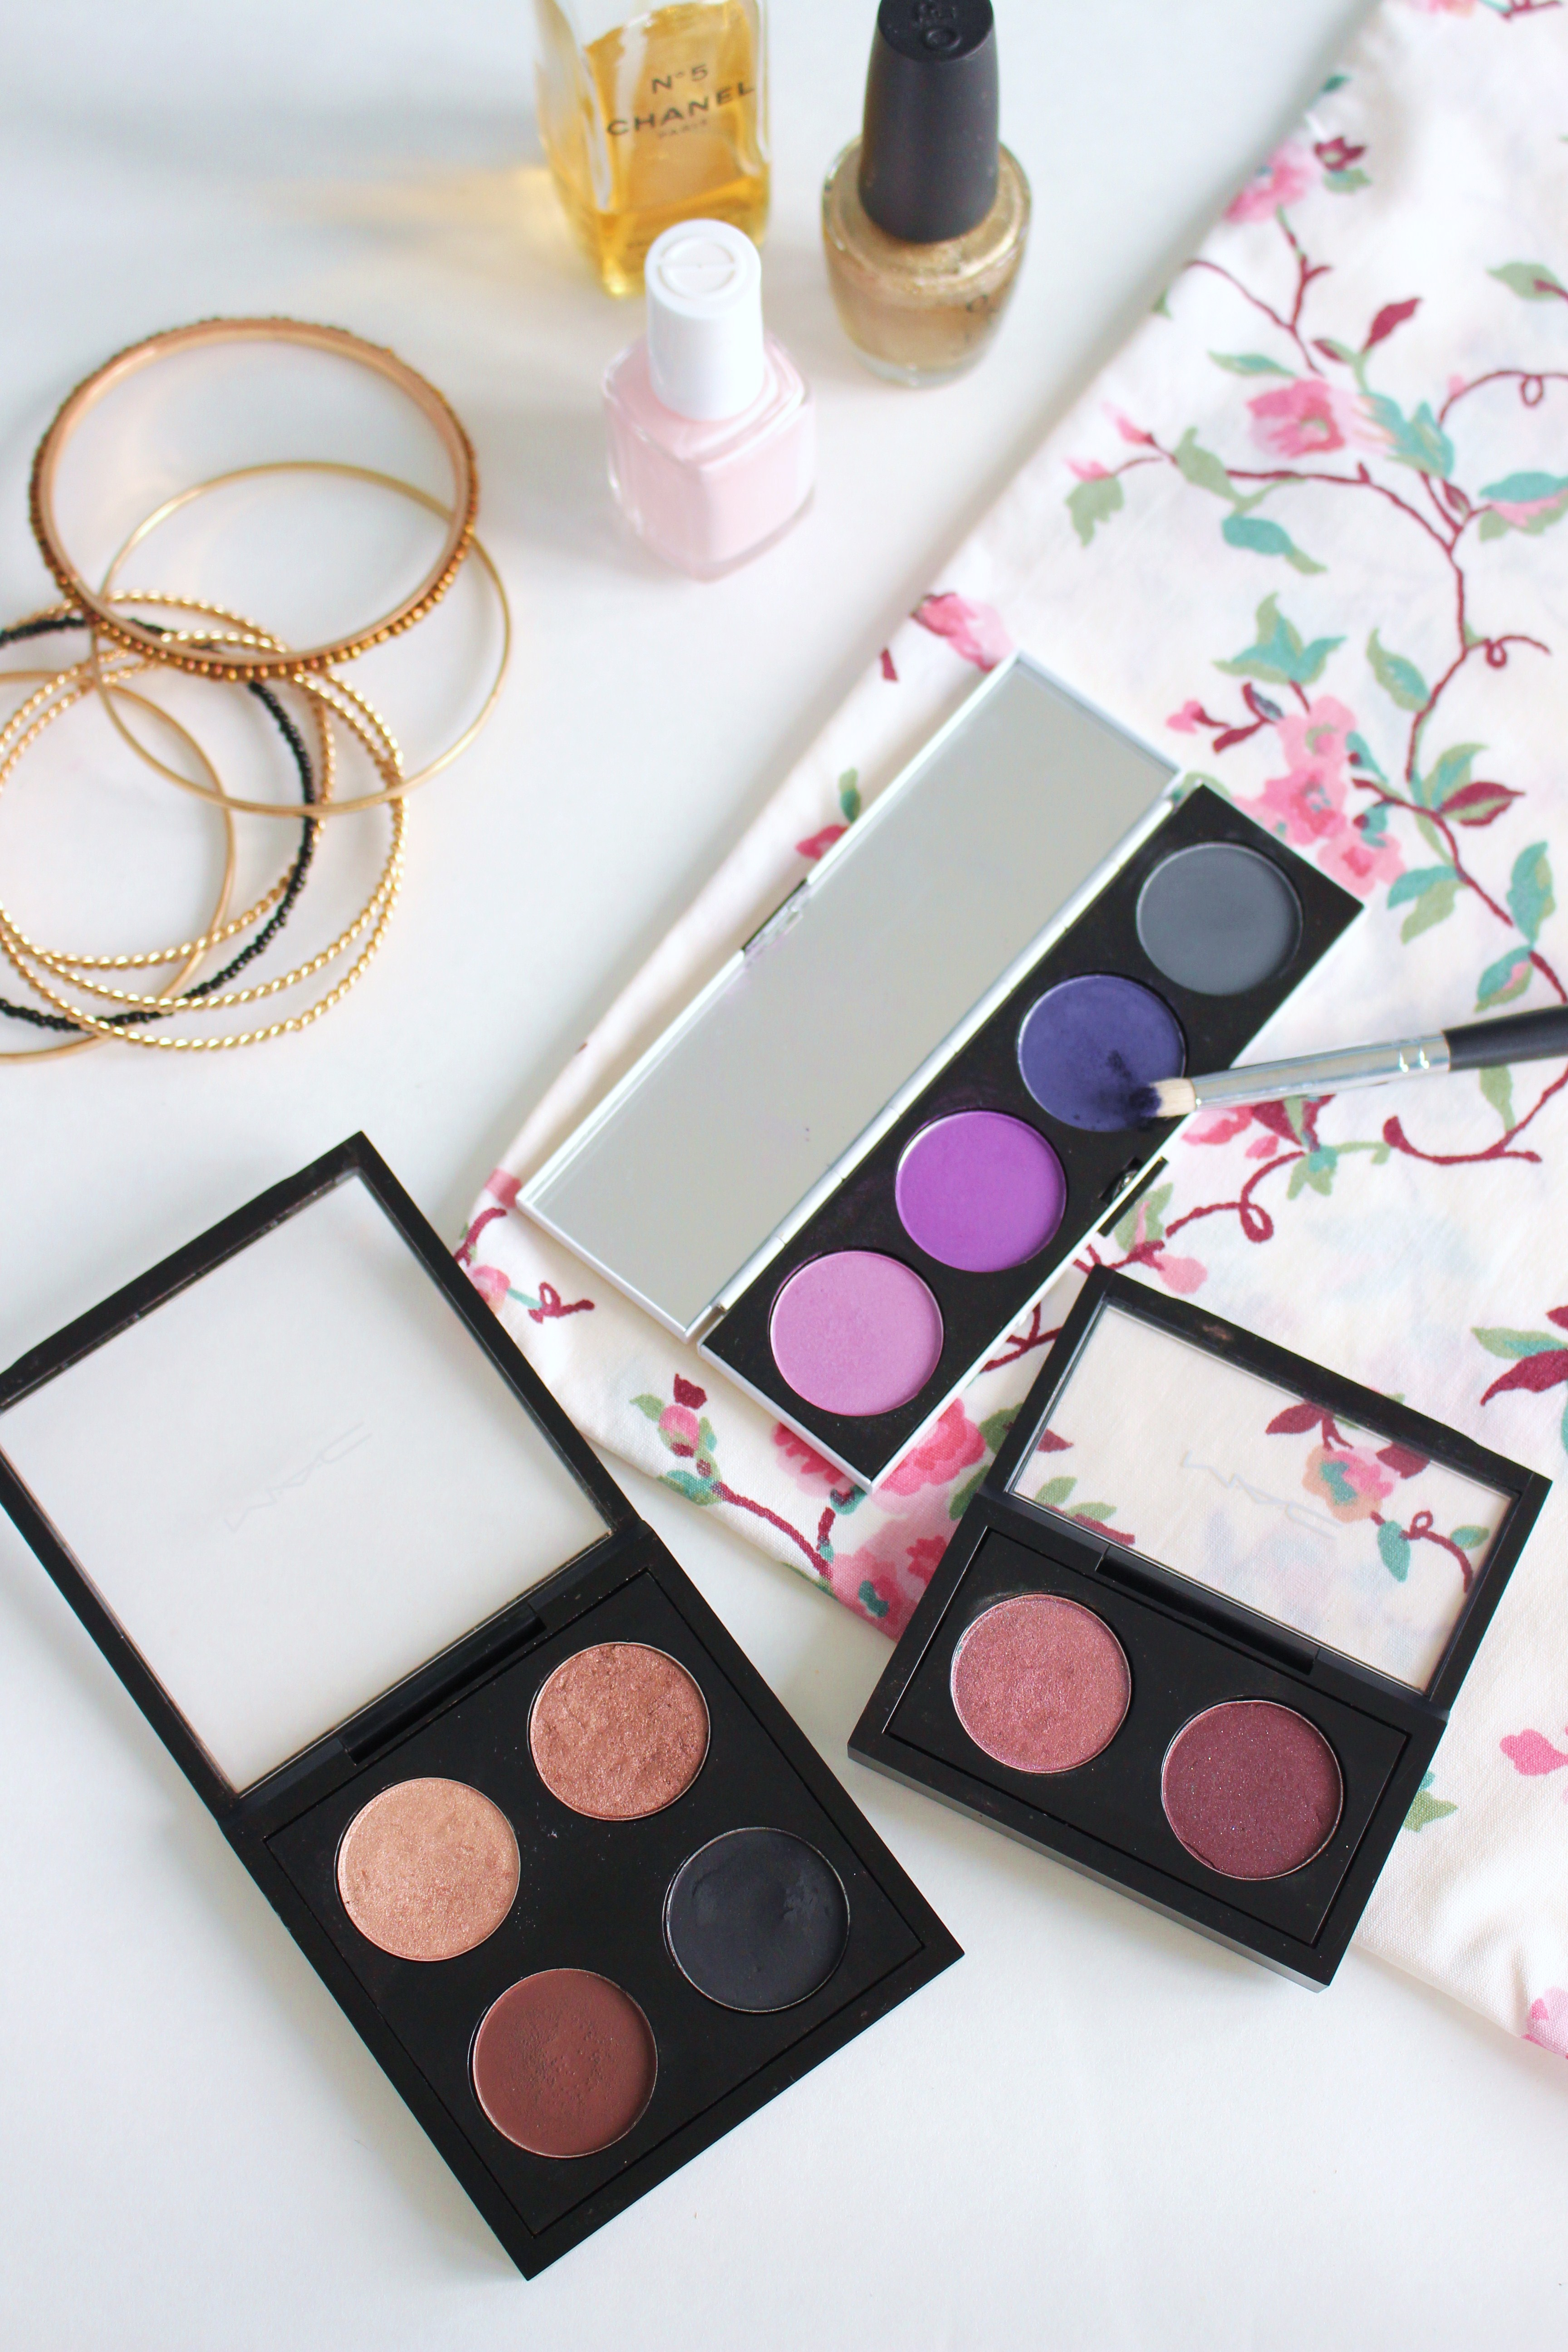 Best of Beauty: My Top 7 MAC Cosmetics Products